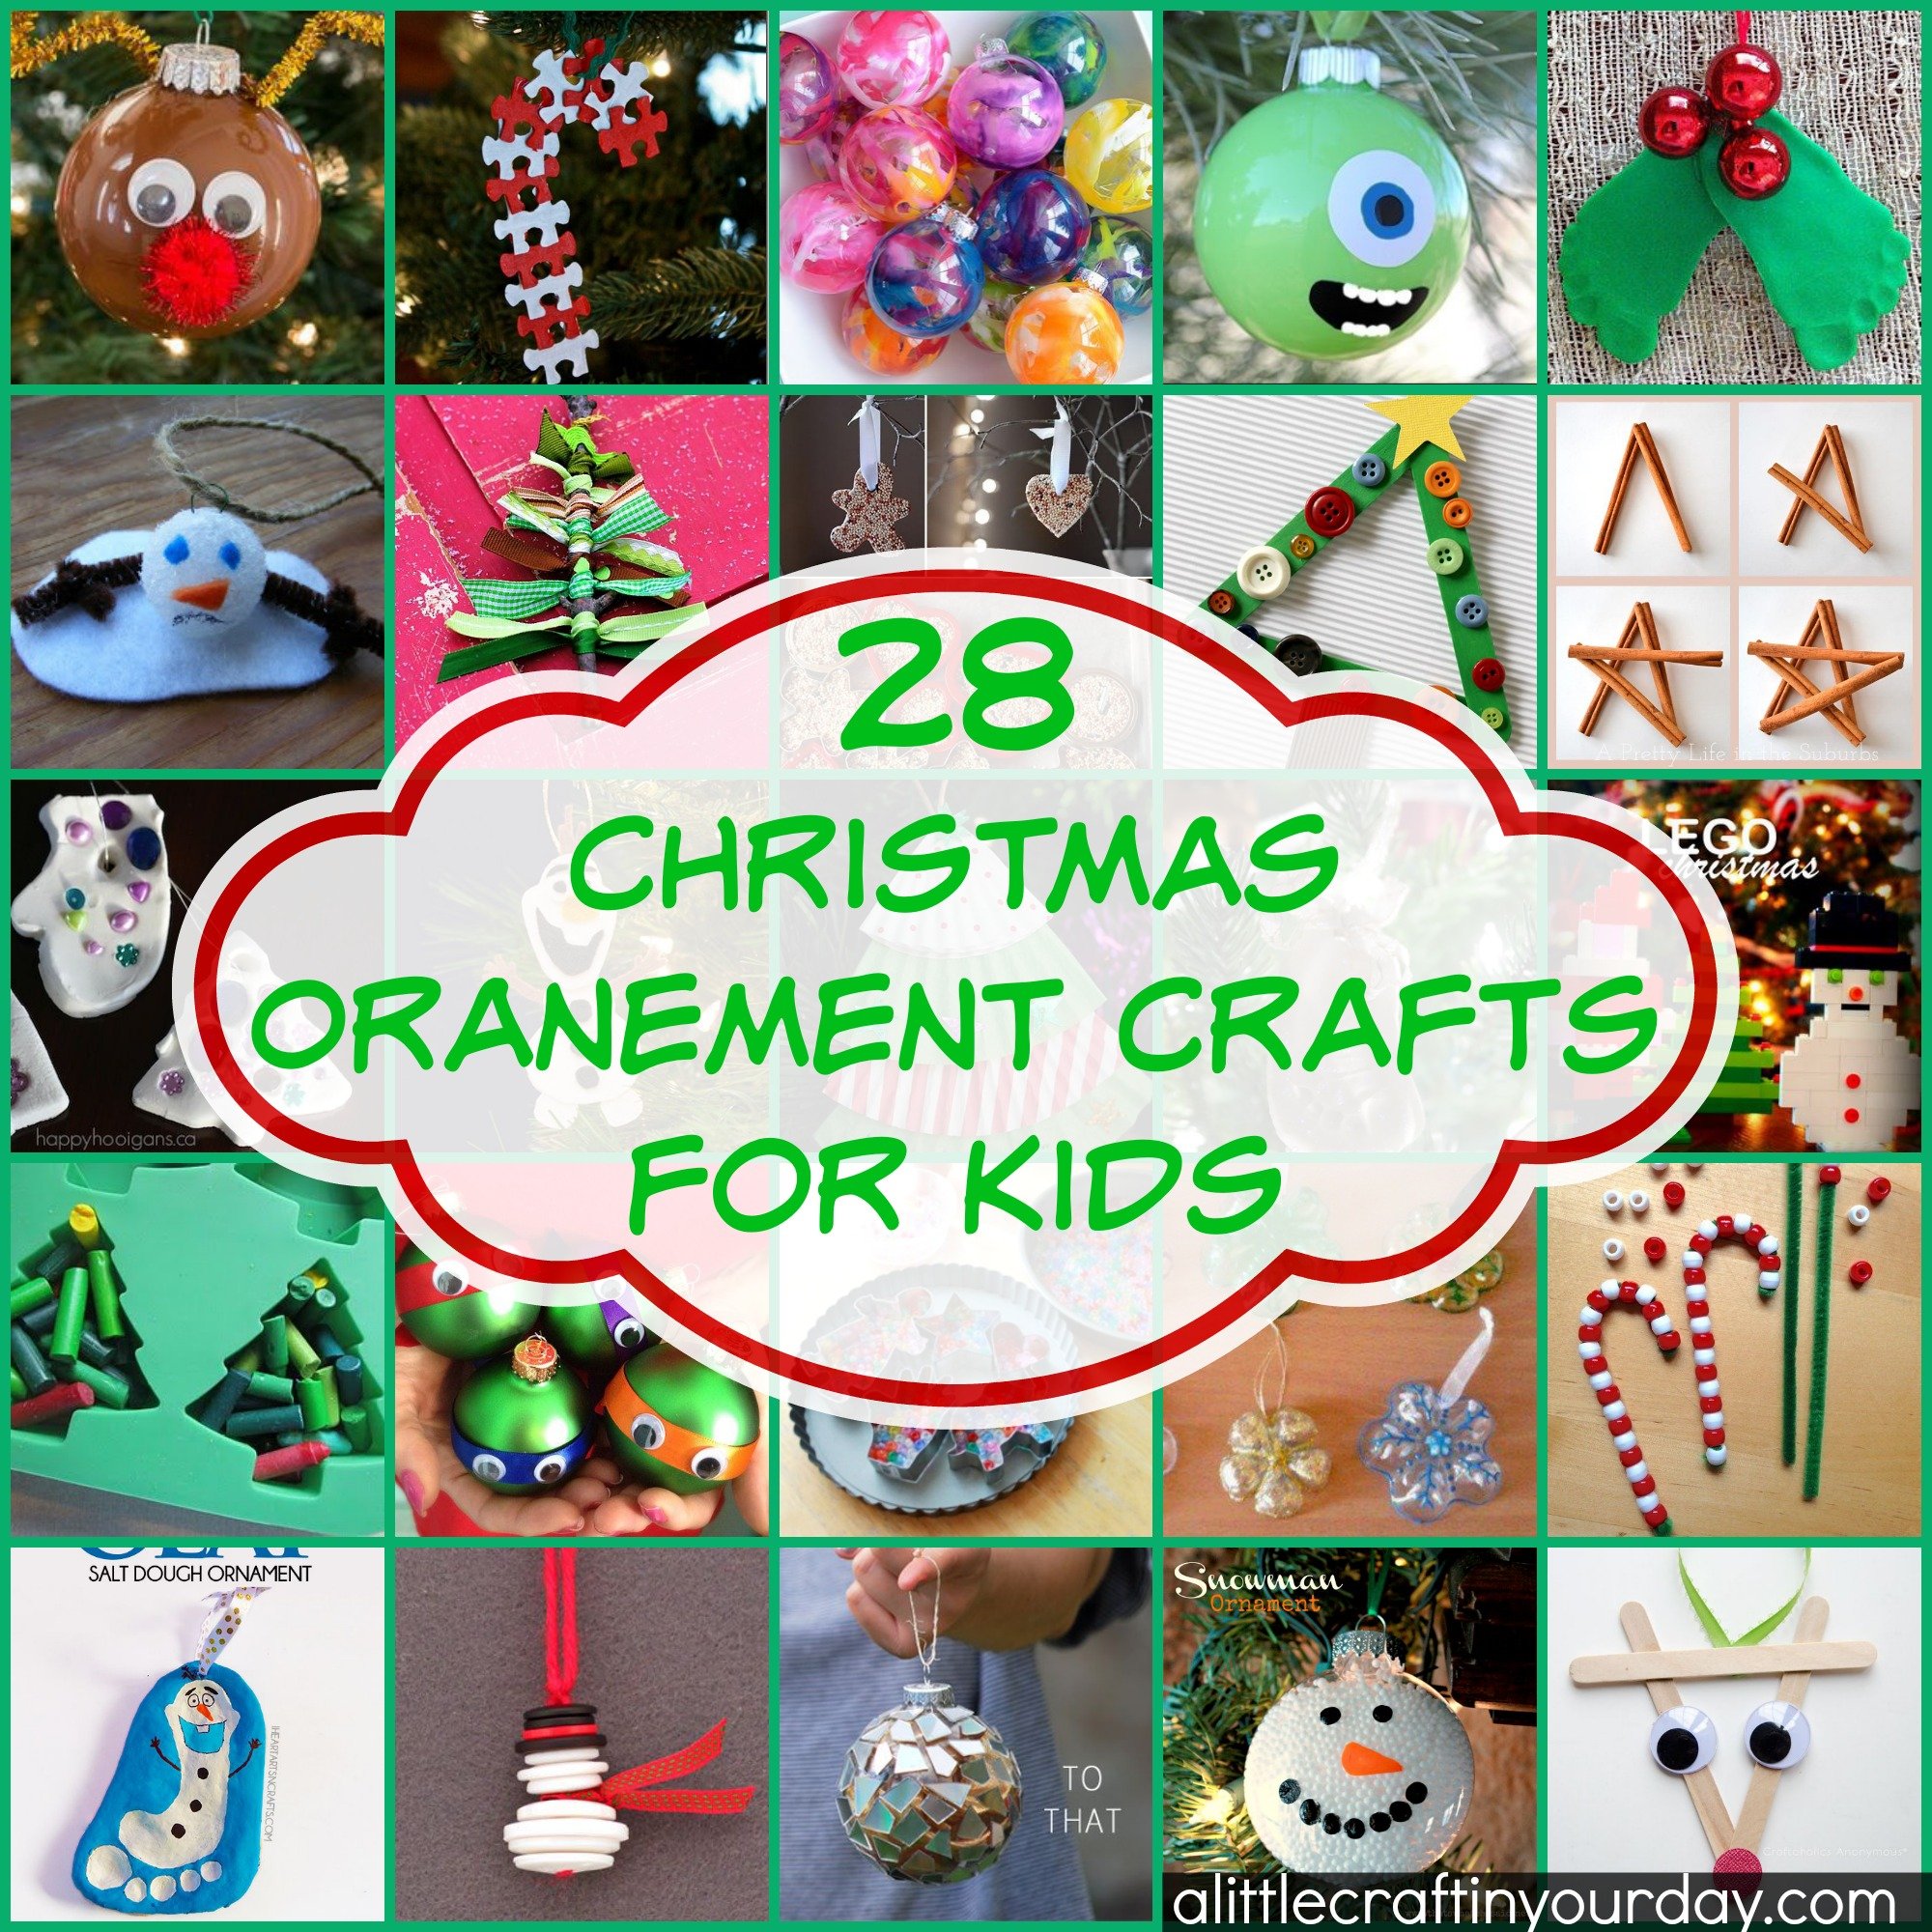 1130 28 christmas ornament crafts for kids 28_christmas_oranment_crafts_for_kids - Childrens Christmas Ornaments